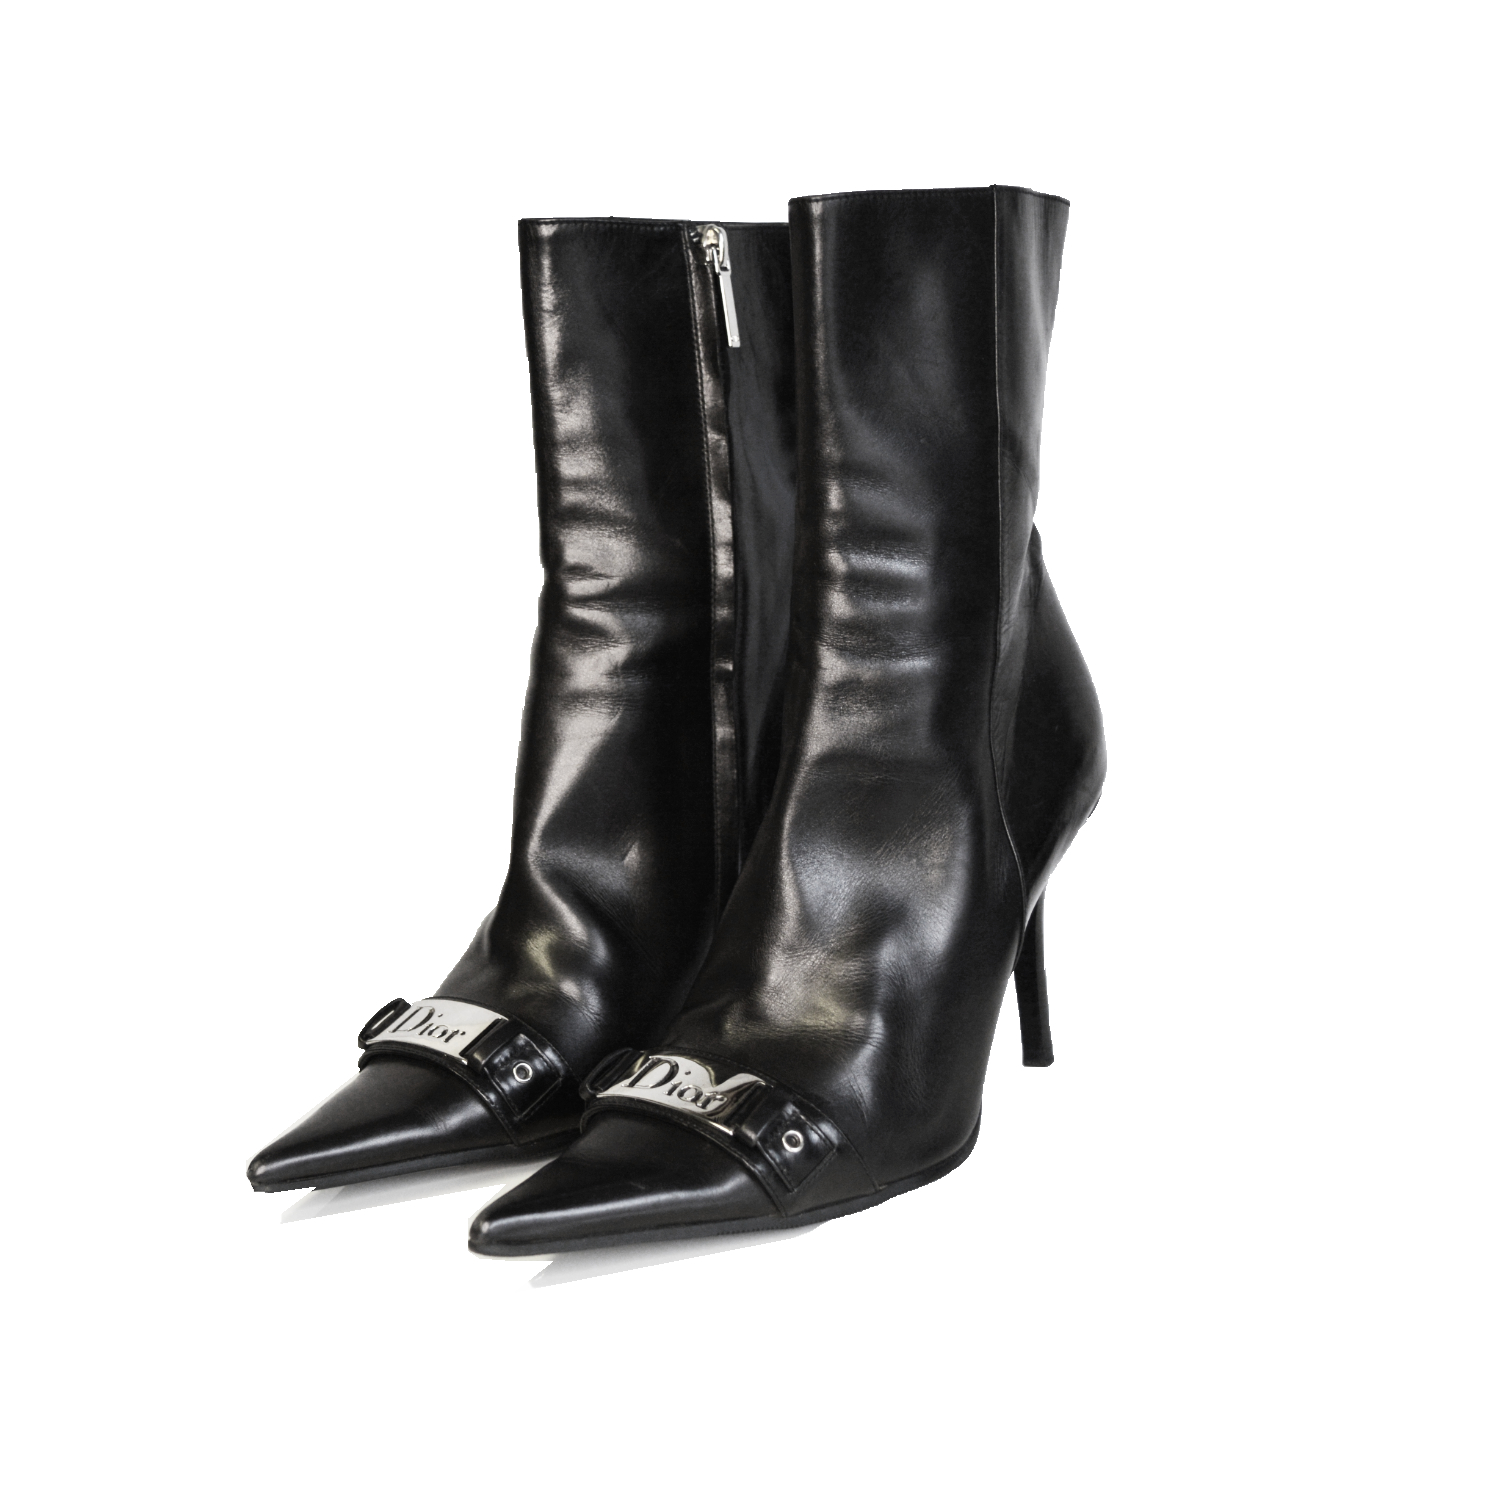 Vintage Dior Logo Leather Pointed Boots in Black | NITRYL